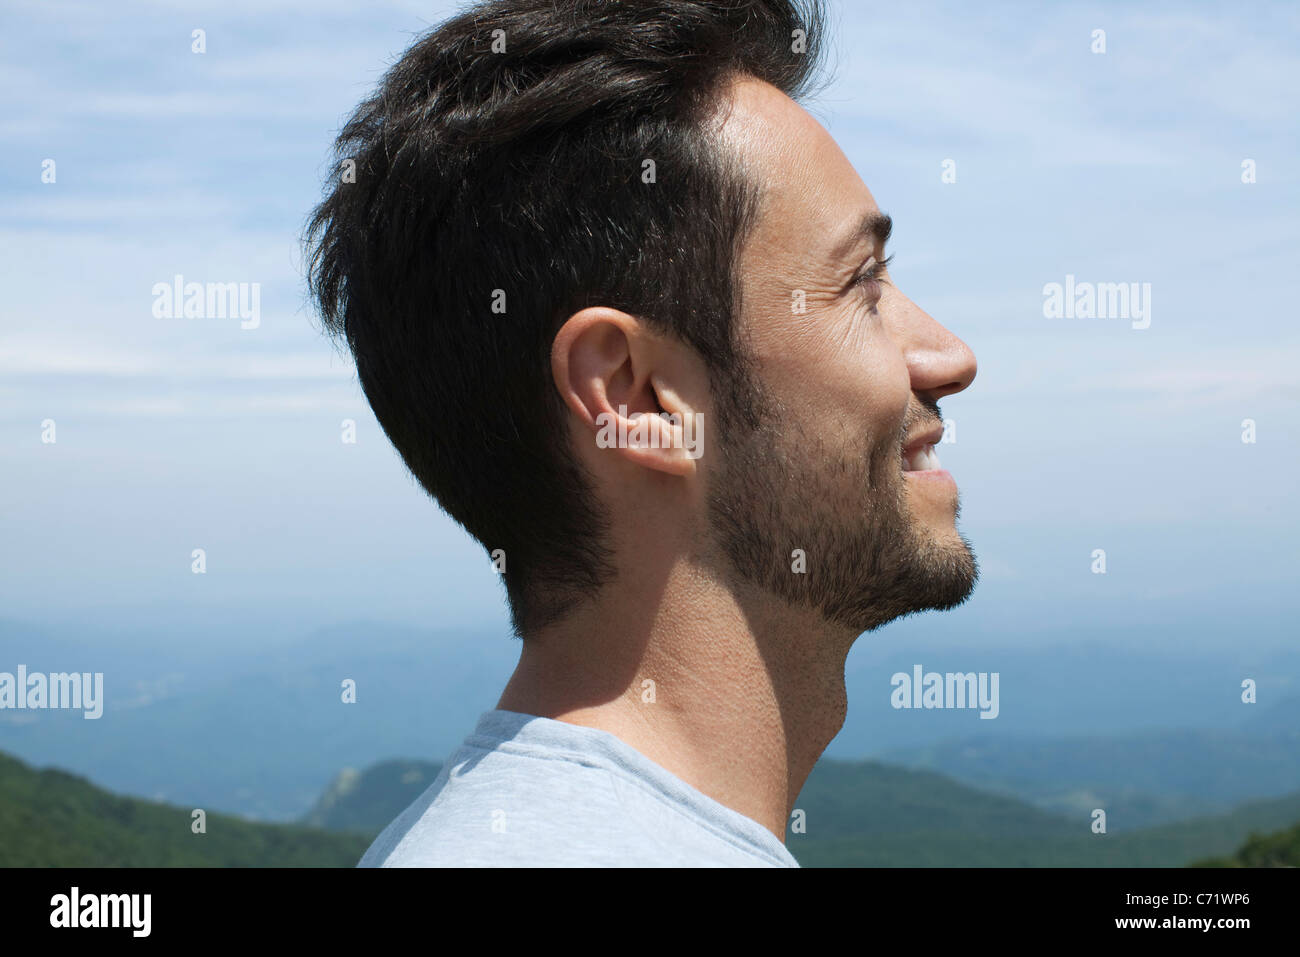 Man looking at scenic view, profile - Stock Image